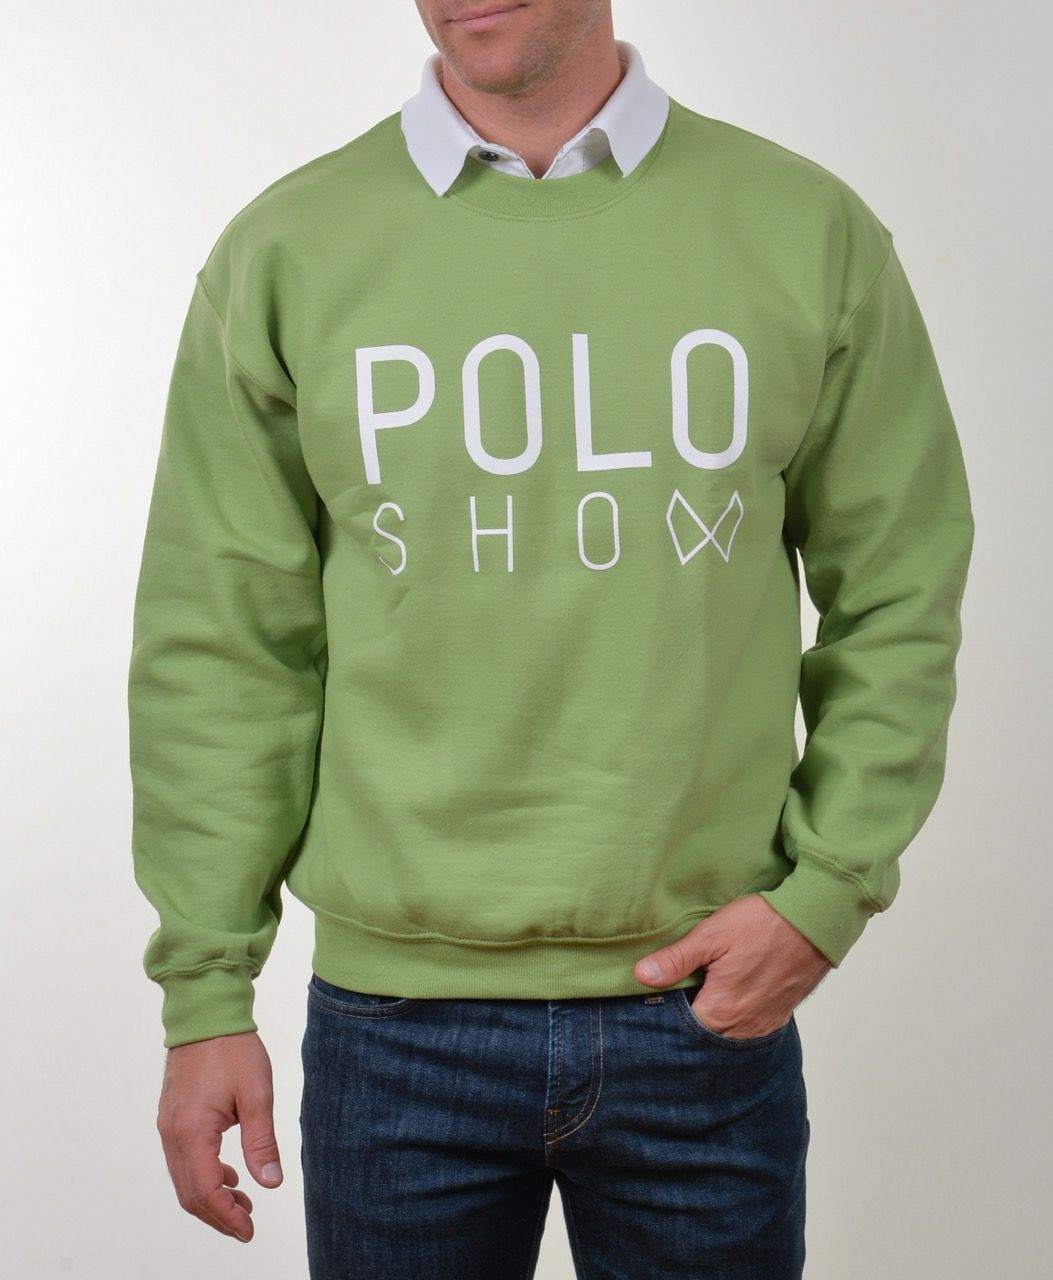 Poloshow Sweater kiwi 4